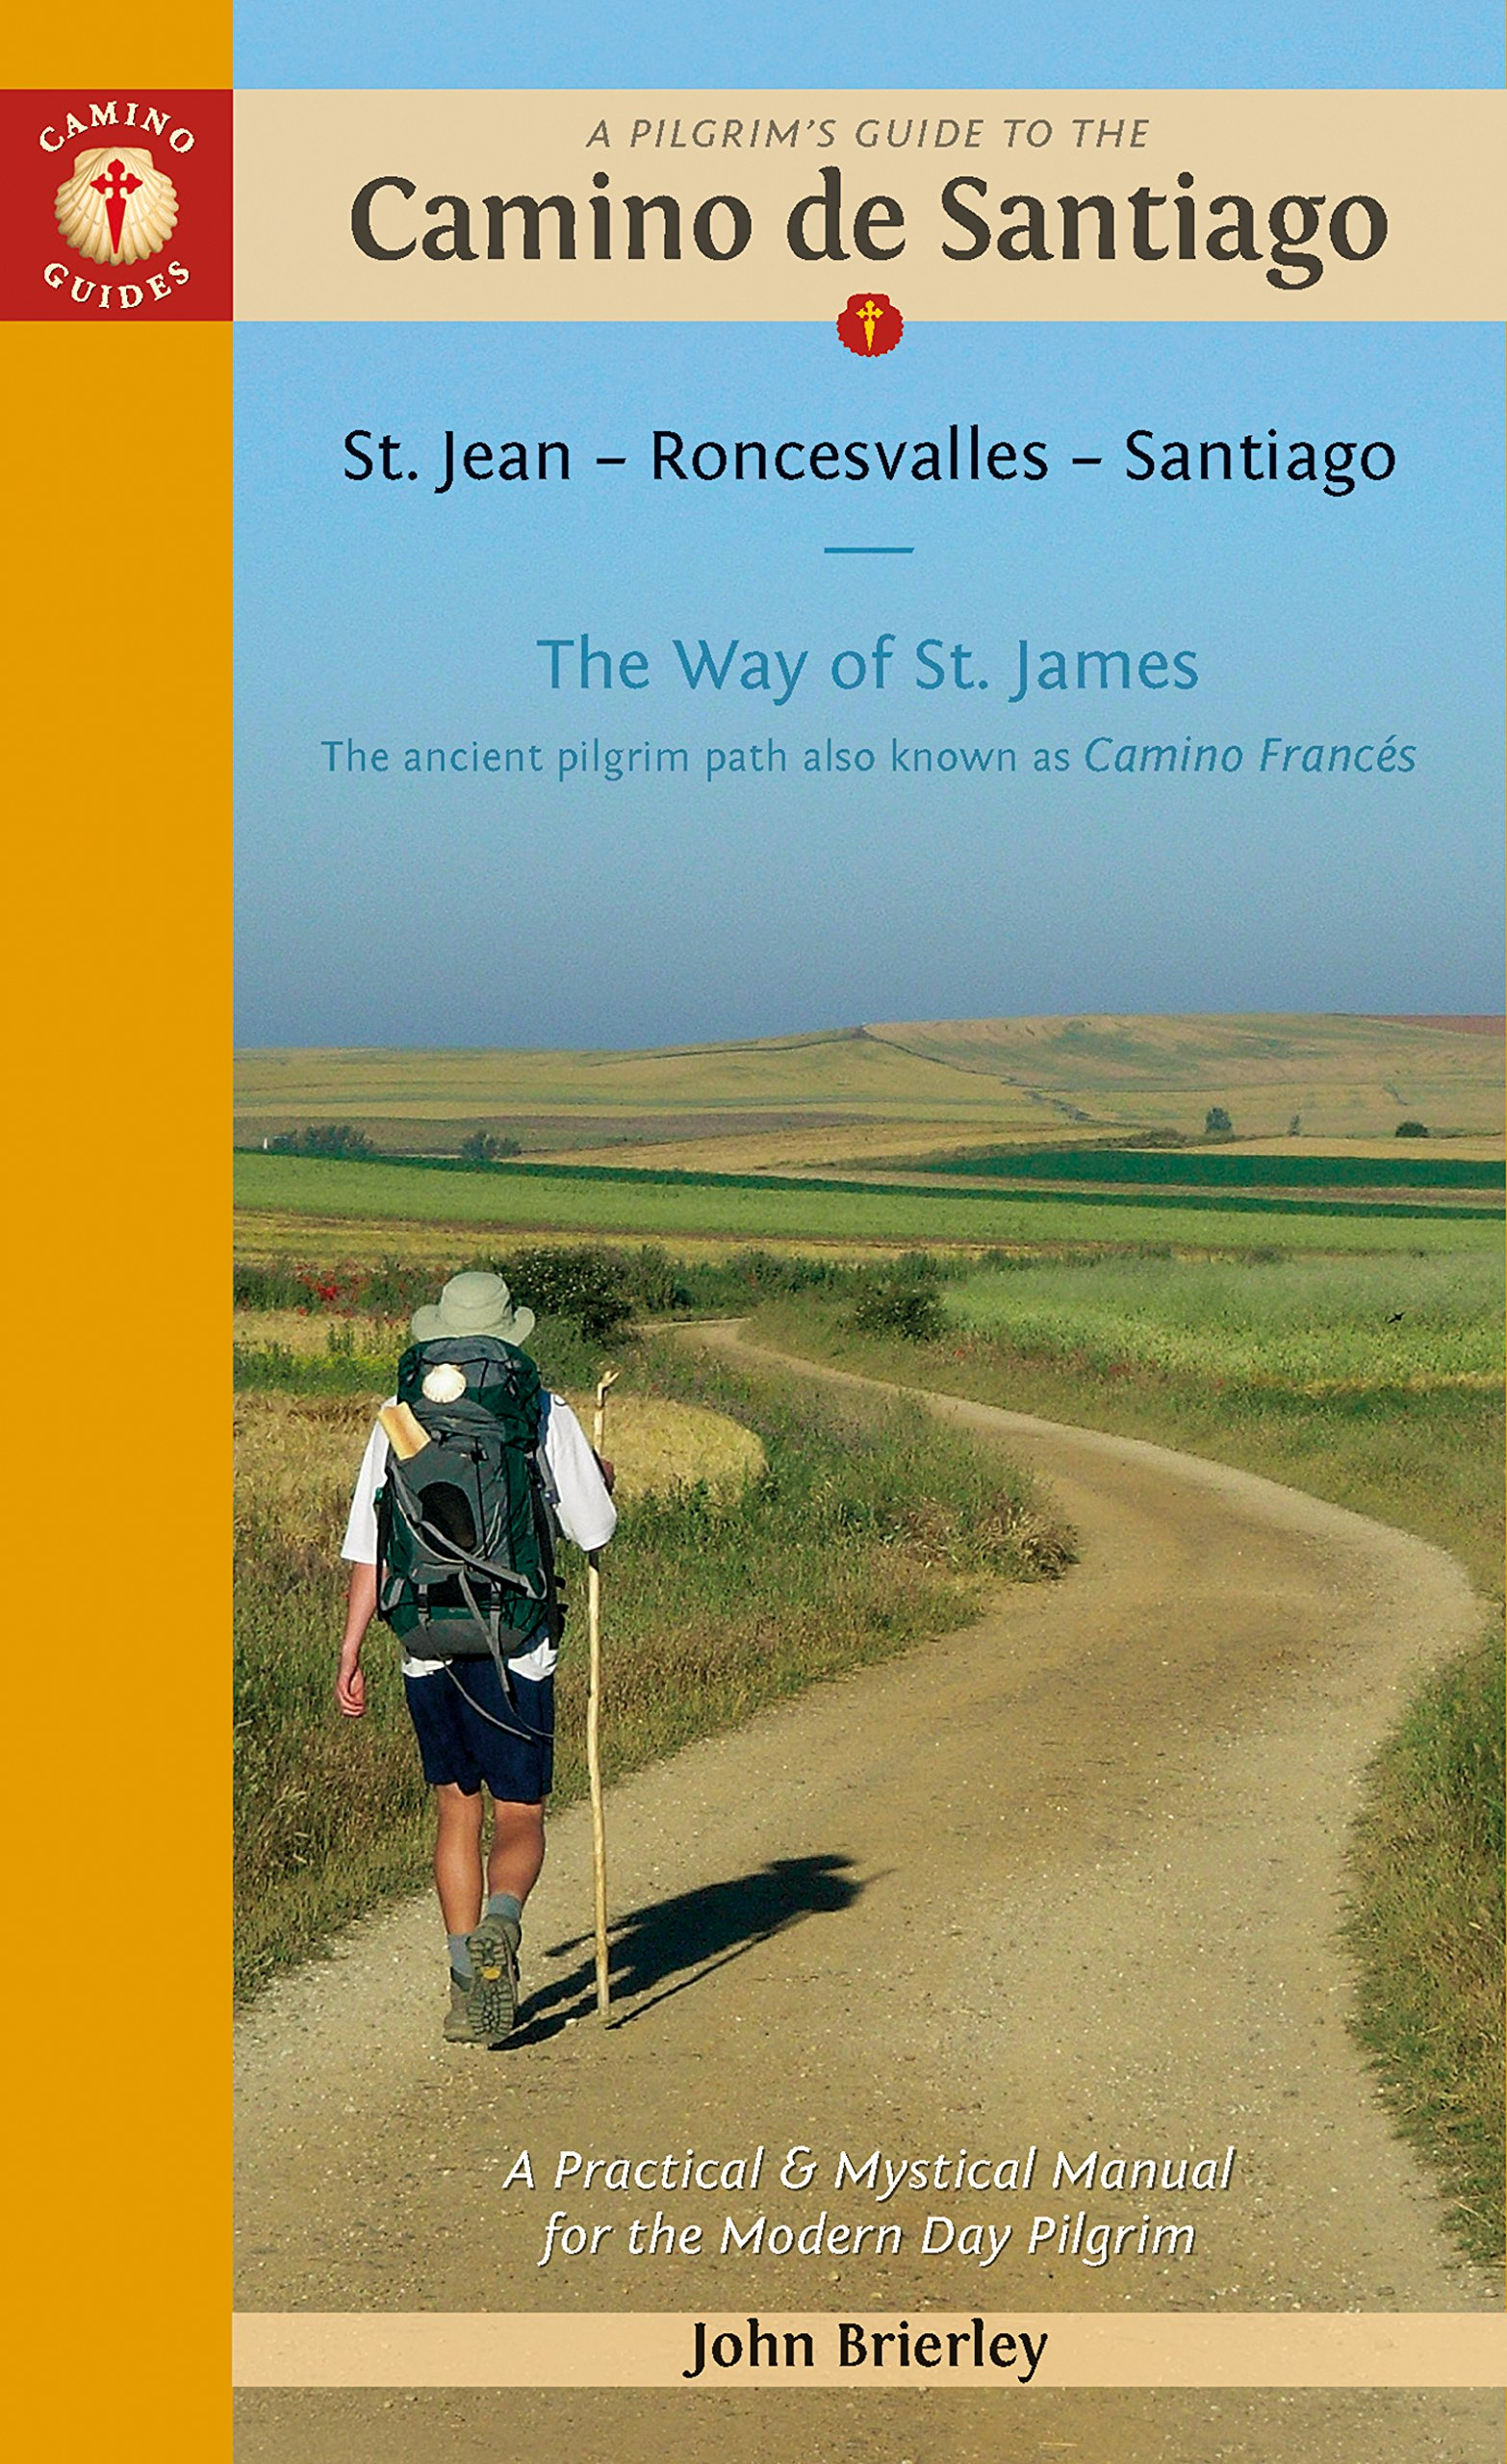 A Pilgrim's Guide to the Camino de Santiago: Camino Francés - St. Jean •  Roncesvalles • Santiago (Camino Guides): John Brierley: 9781912216000:  Amazon.com: ...